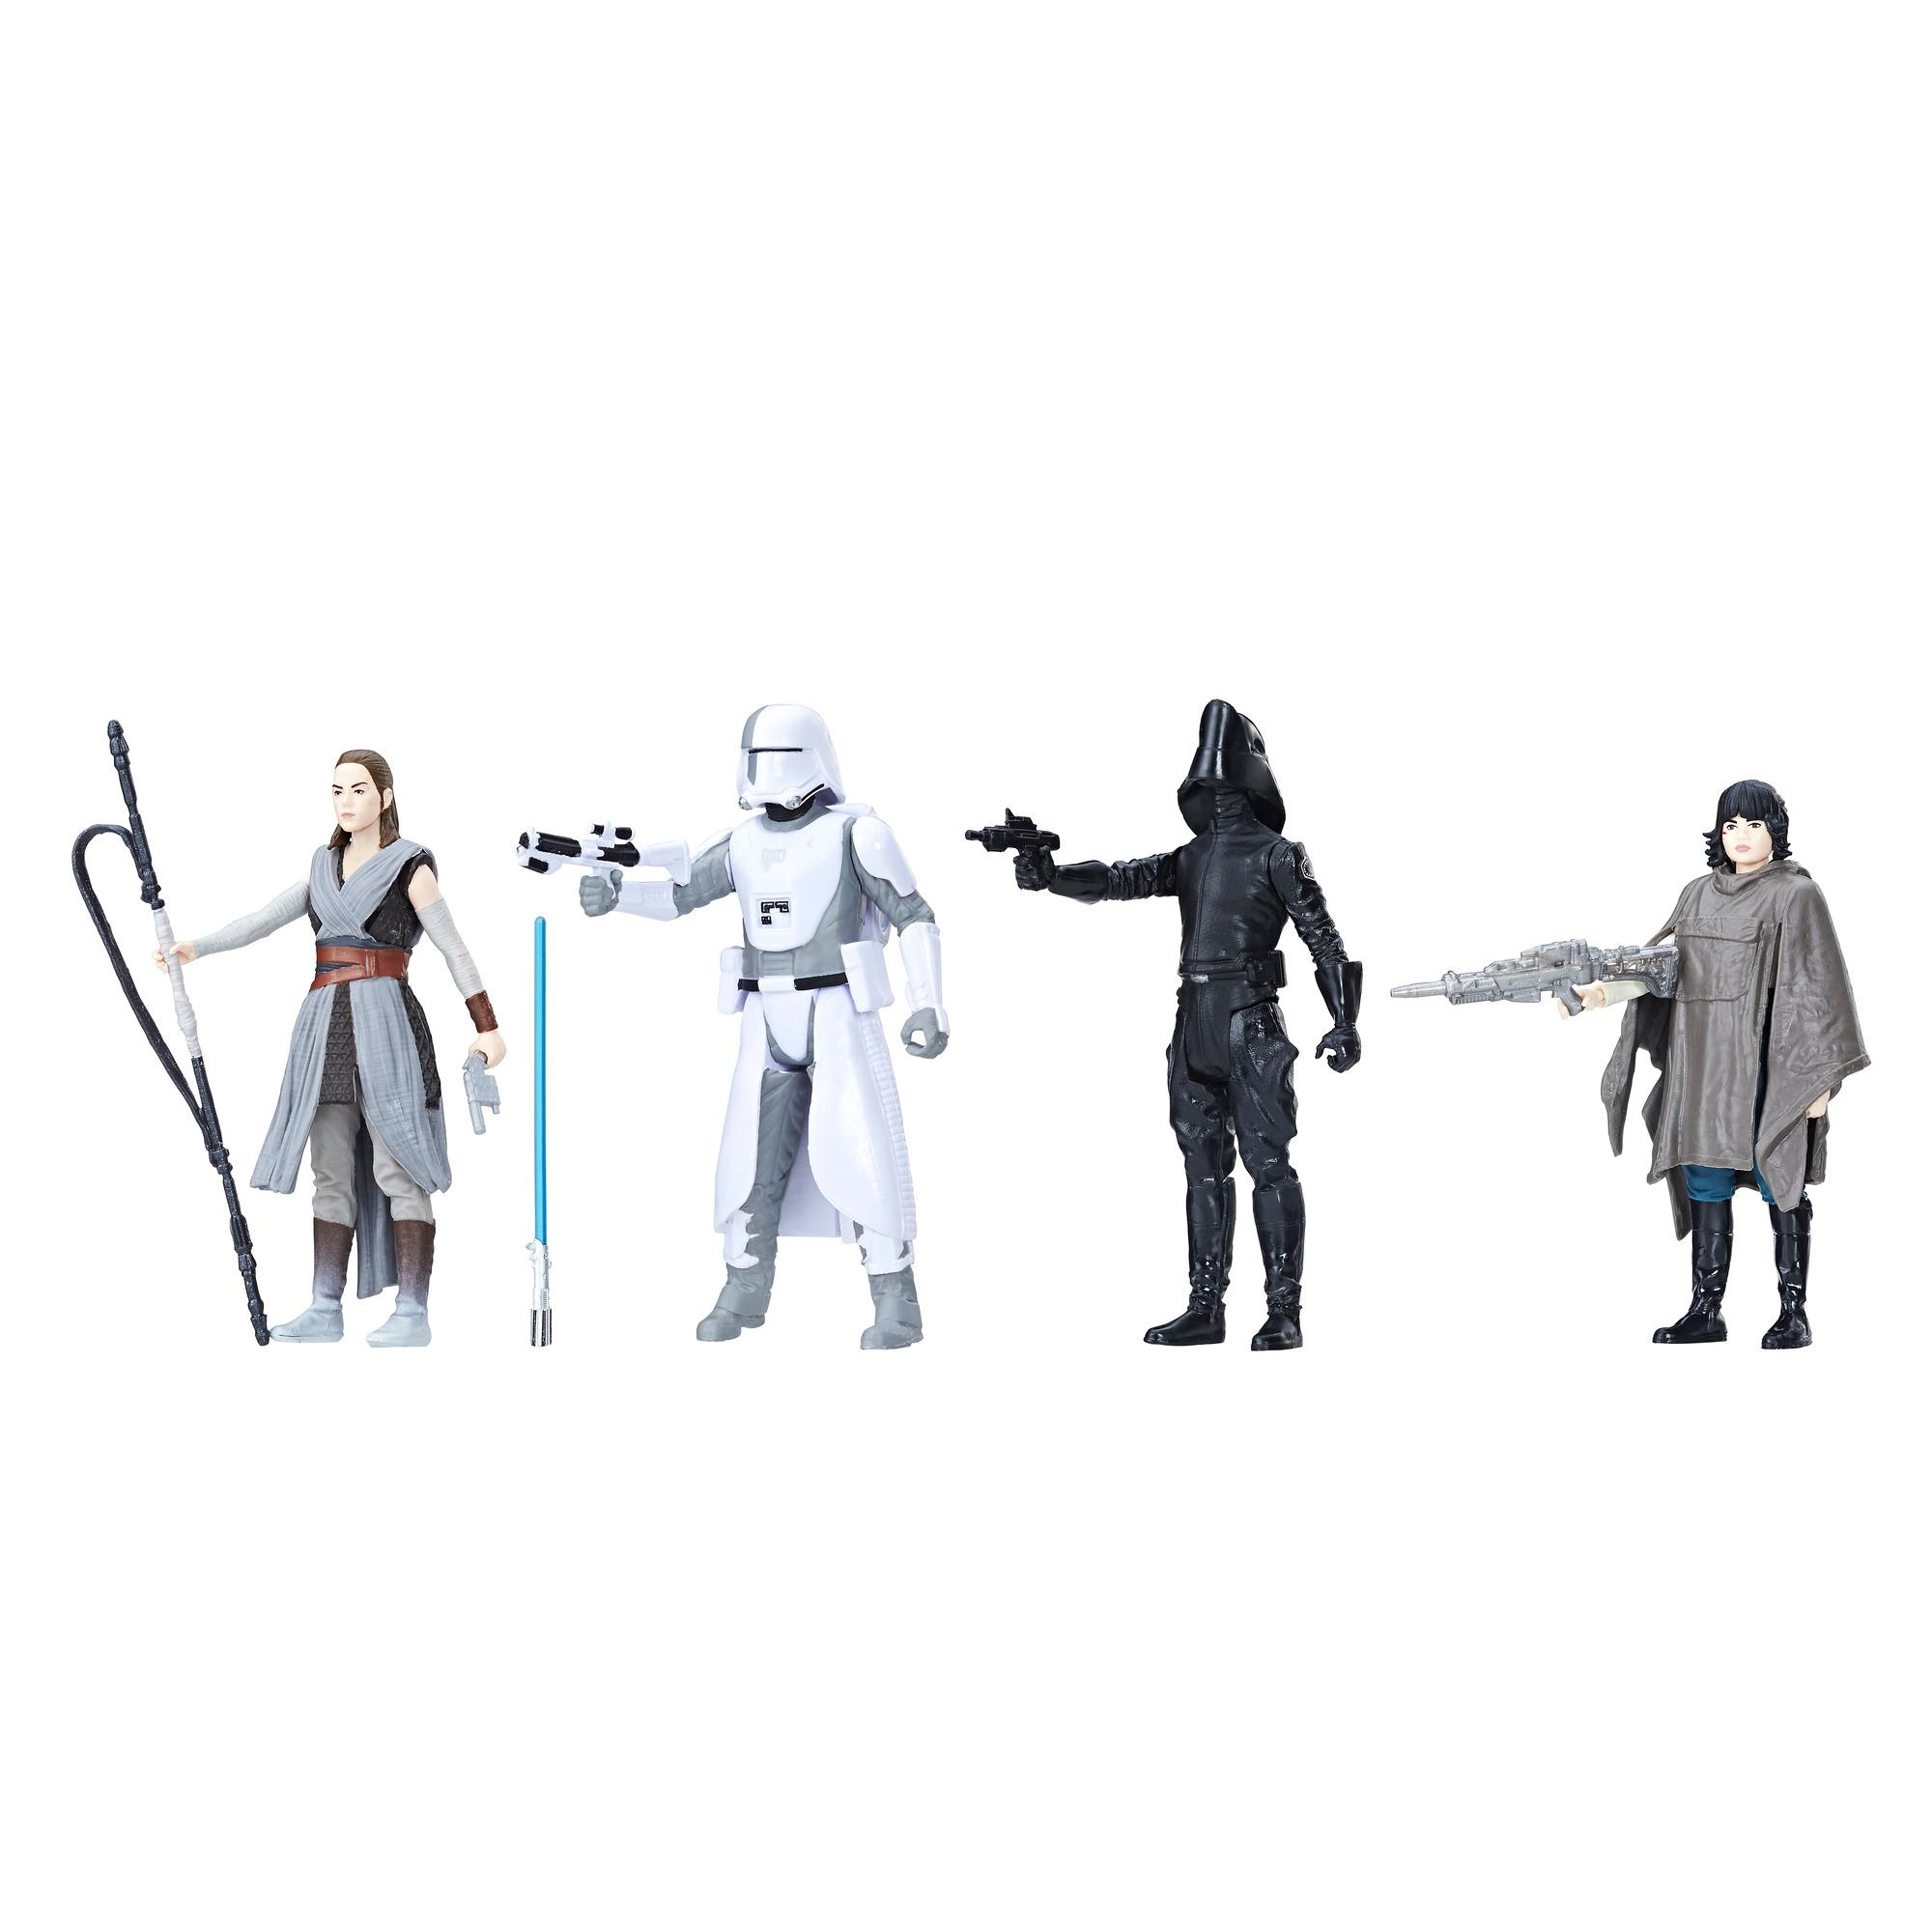 Star Wars Force Link - Battaglia di Crait (Pack da 4 Personaggi)